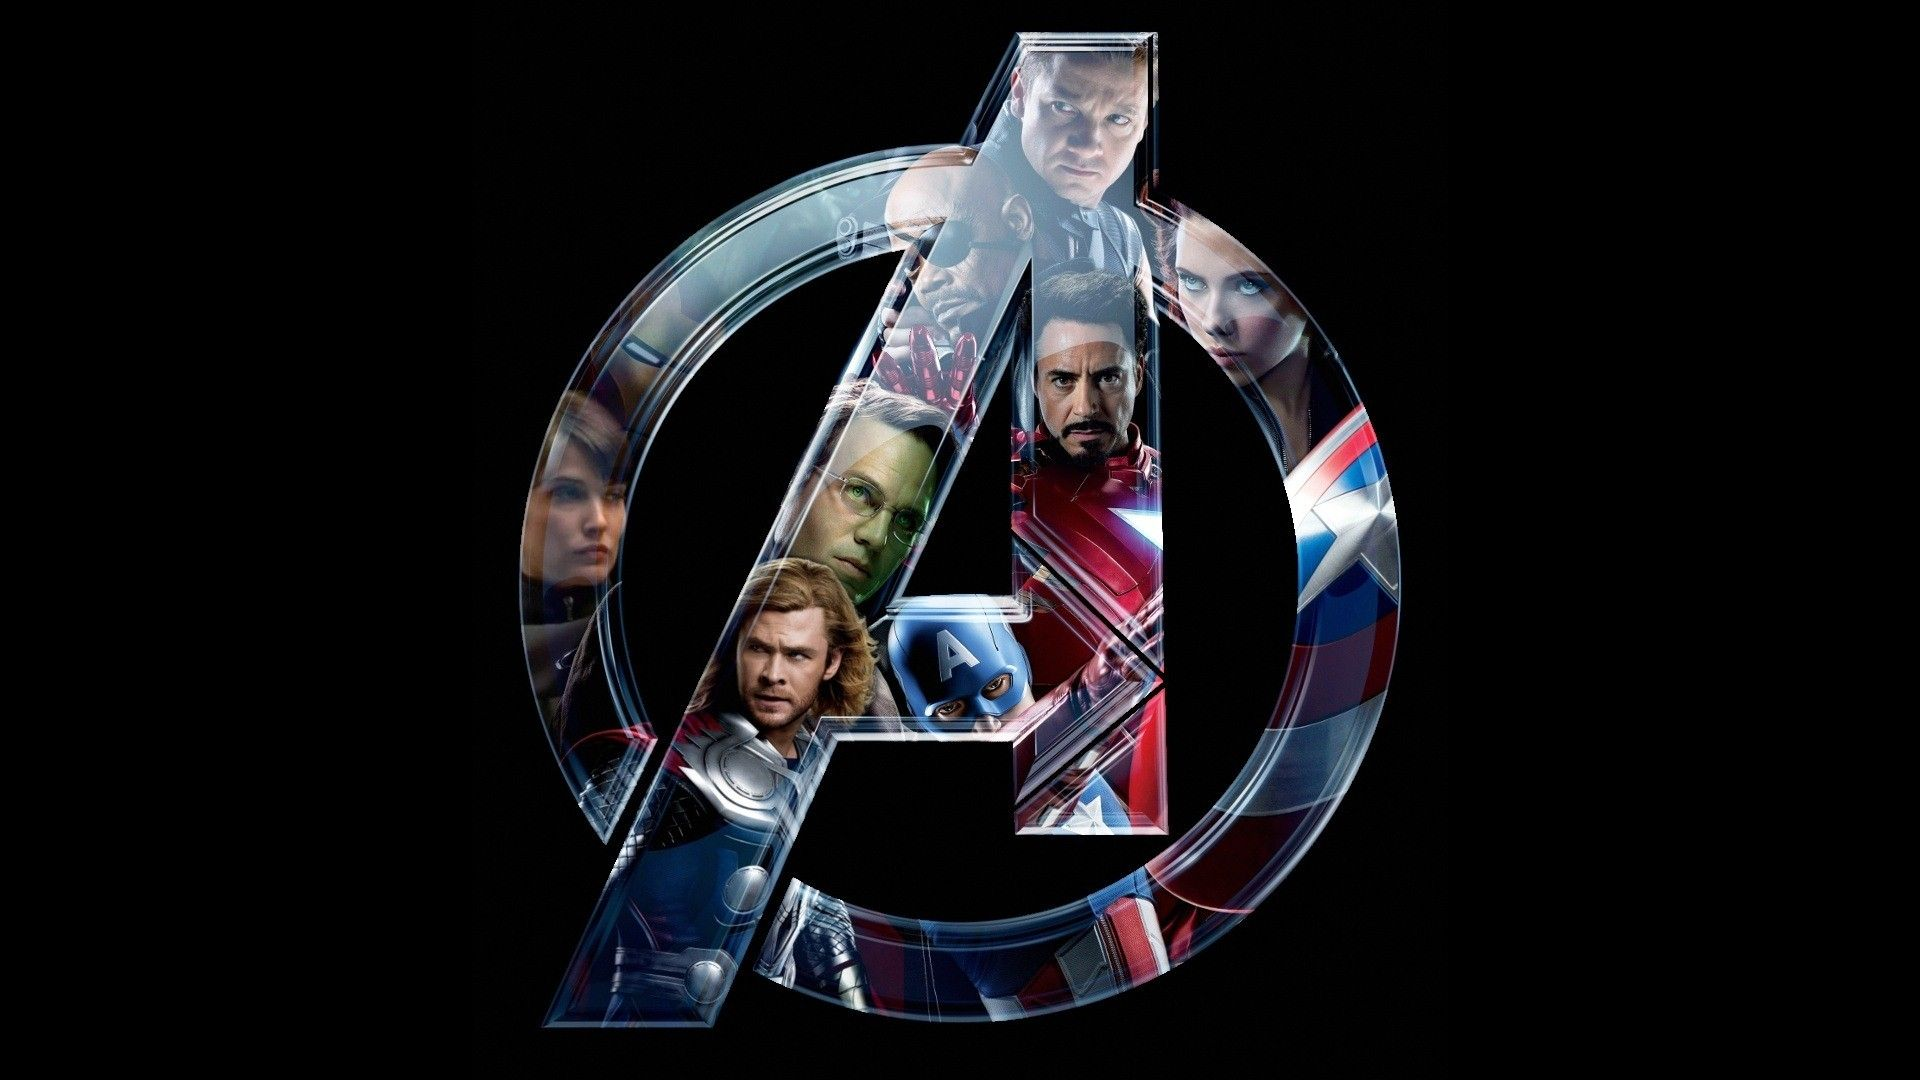 1920x1080 The Avengers 2012 Hd Wallpapers Hd 1080p 1 Hd Desktop